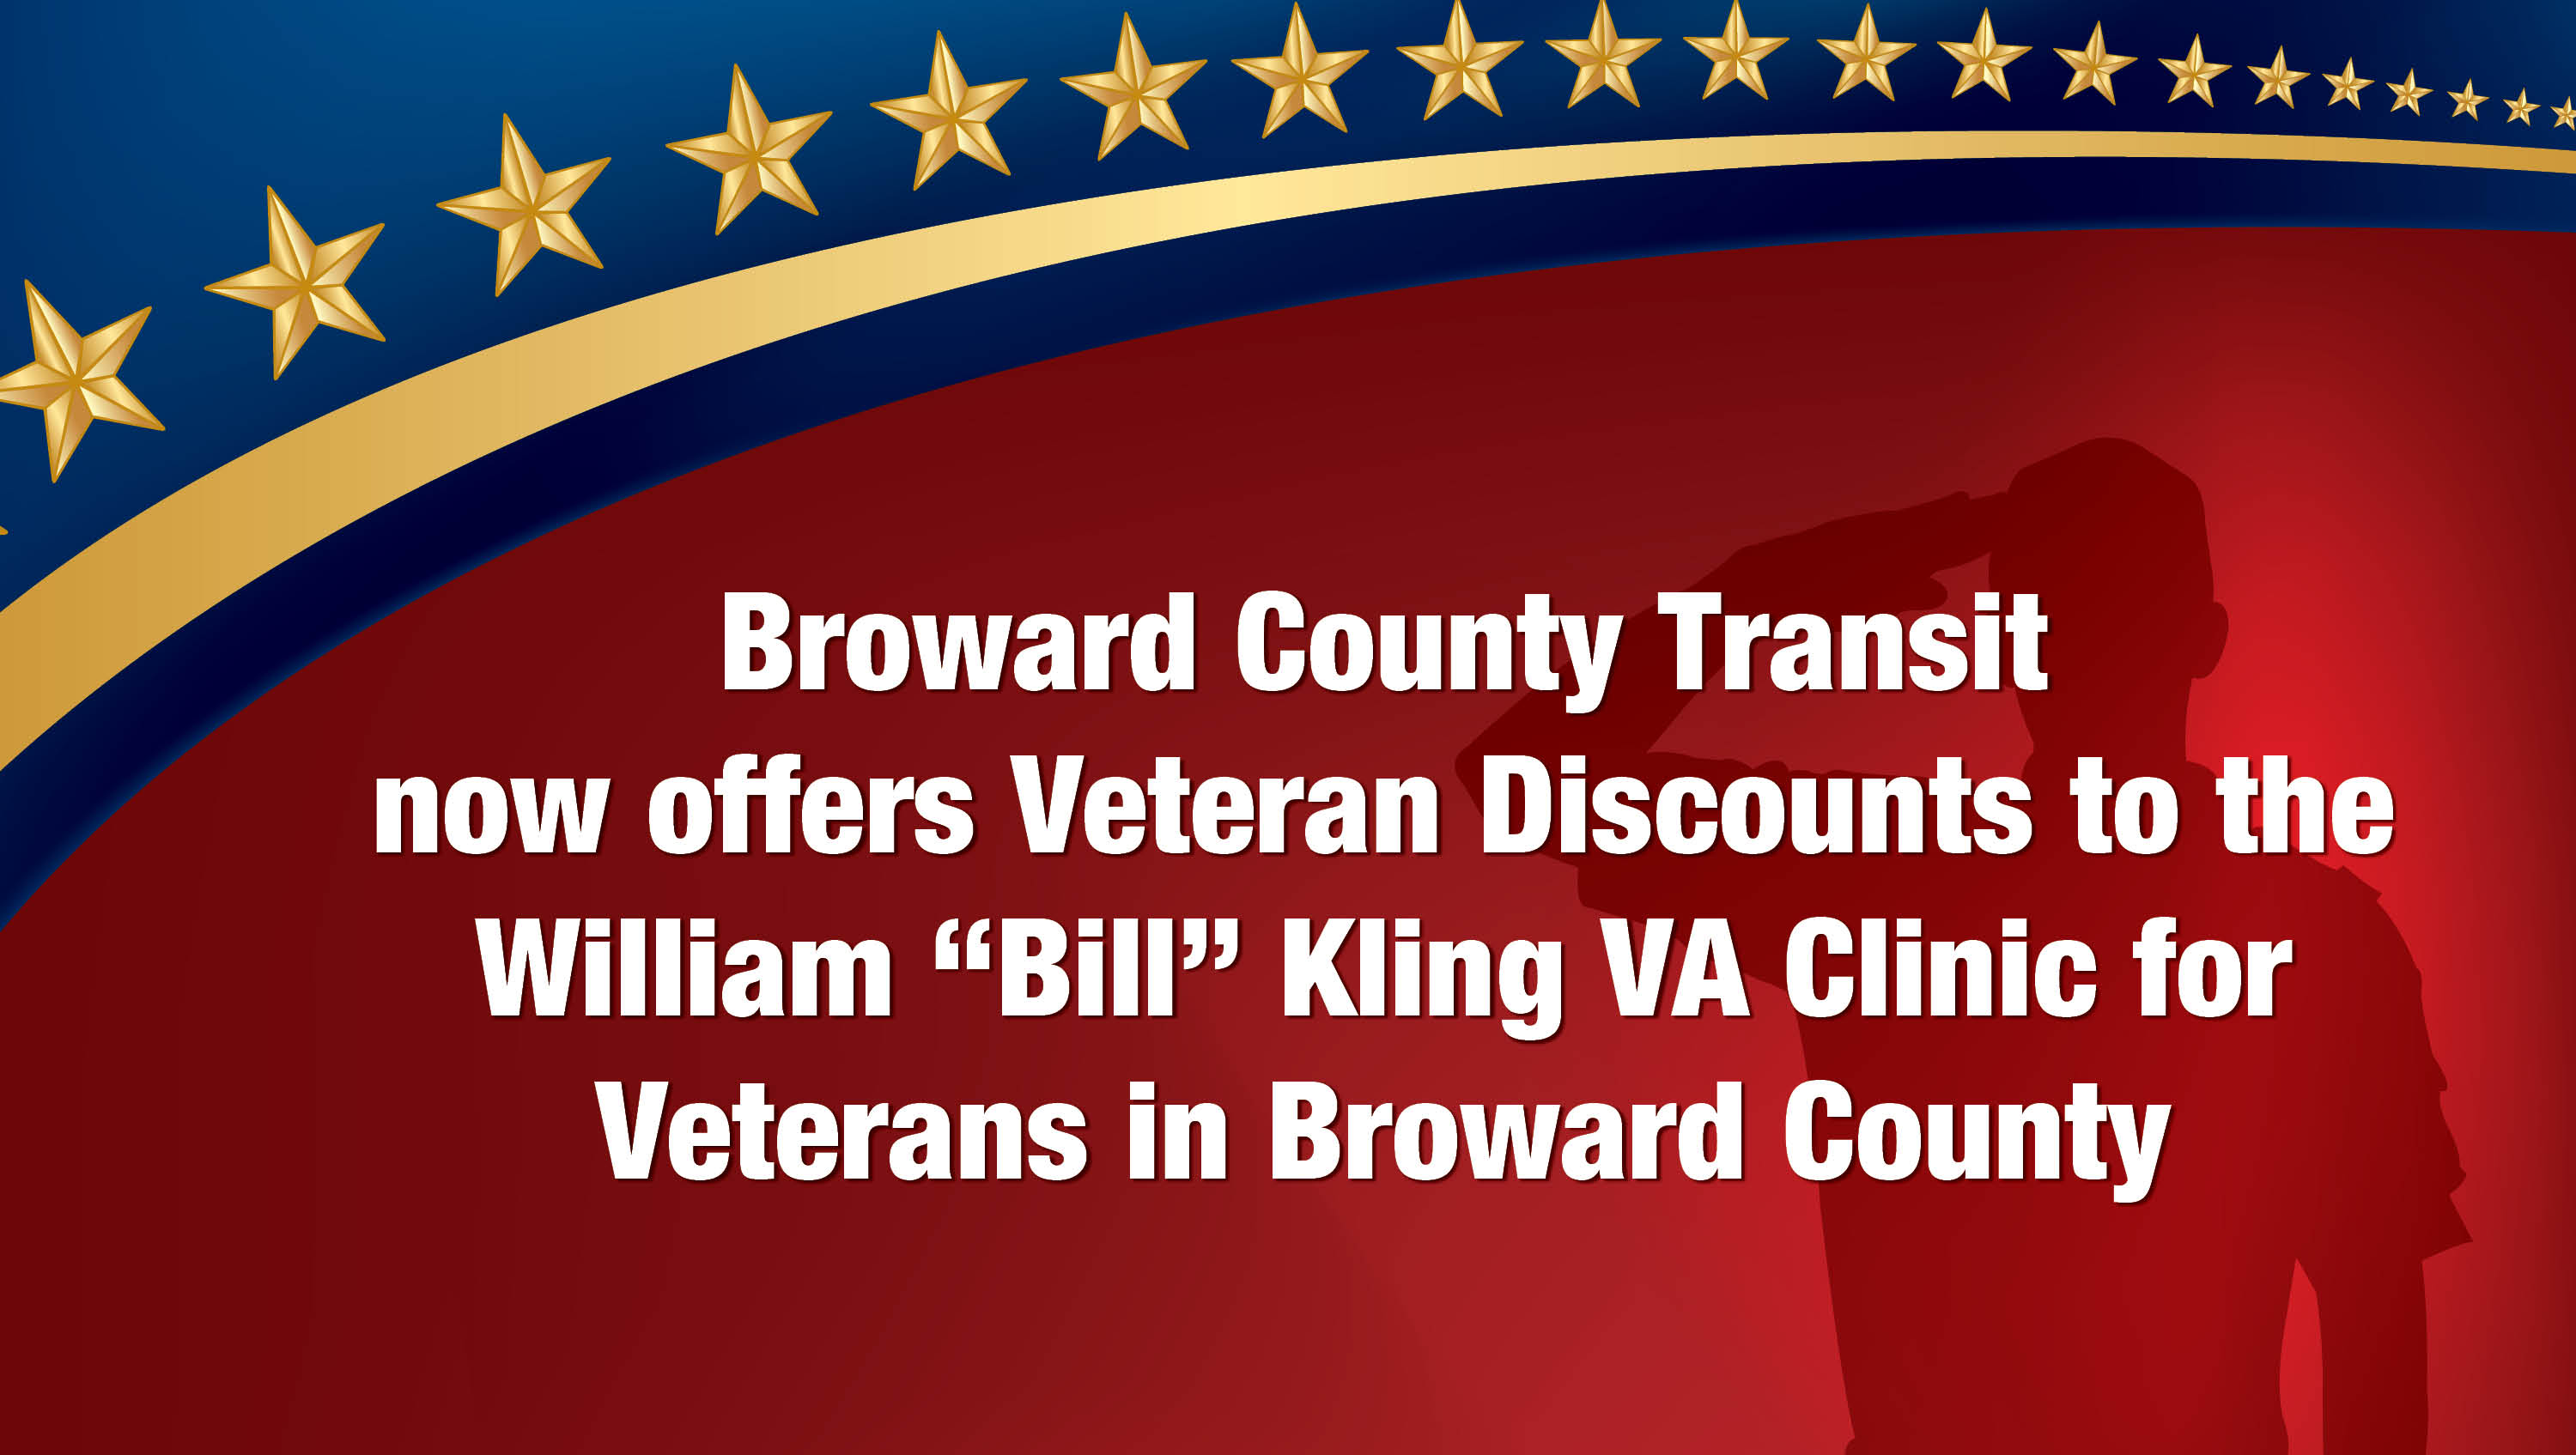 Broward County Transit now offers Veteran discounts to VA facilities